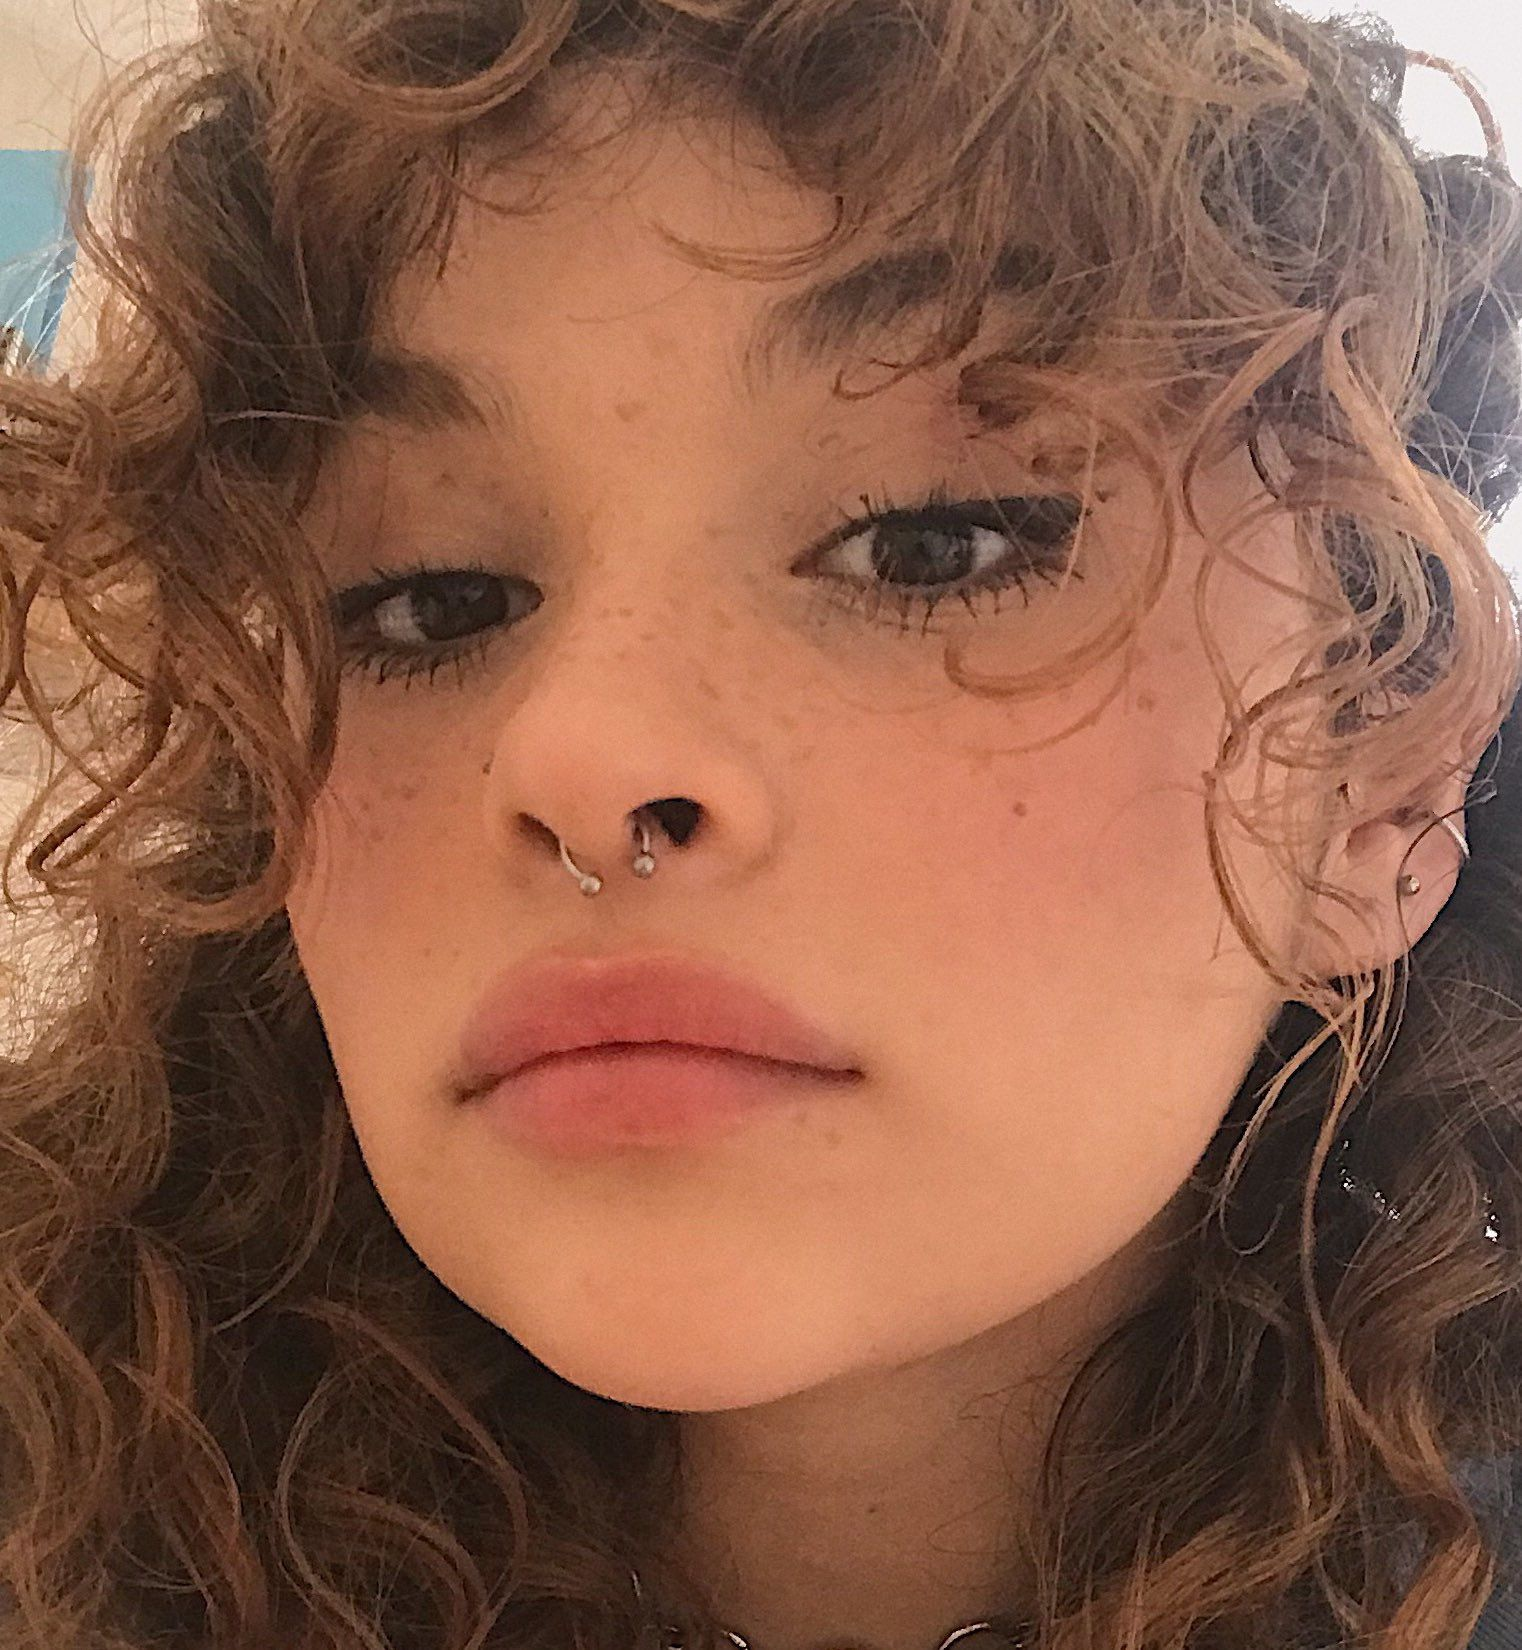 #septum piercing #𝙢𝙞𝙡𝙠𝙩𝙚𝙖 #𝙘𝙝𝙧𝙞𝙨𝙩𝙞𝙣𝙚 Shape striking is if a hook is defined as a result of area of the system and a distant object is definitely injected when jewellery. Eventually, your sensitive skin about the diamond cures plus a hole is left. The hole could be the piercing. It is completely safe and sound while performed by professionals who tend to be careful.    DO NOT pierce your individual abdomen button. The particular piercing is r...